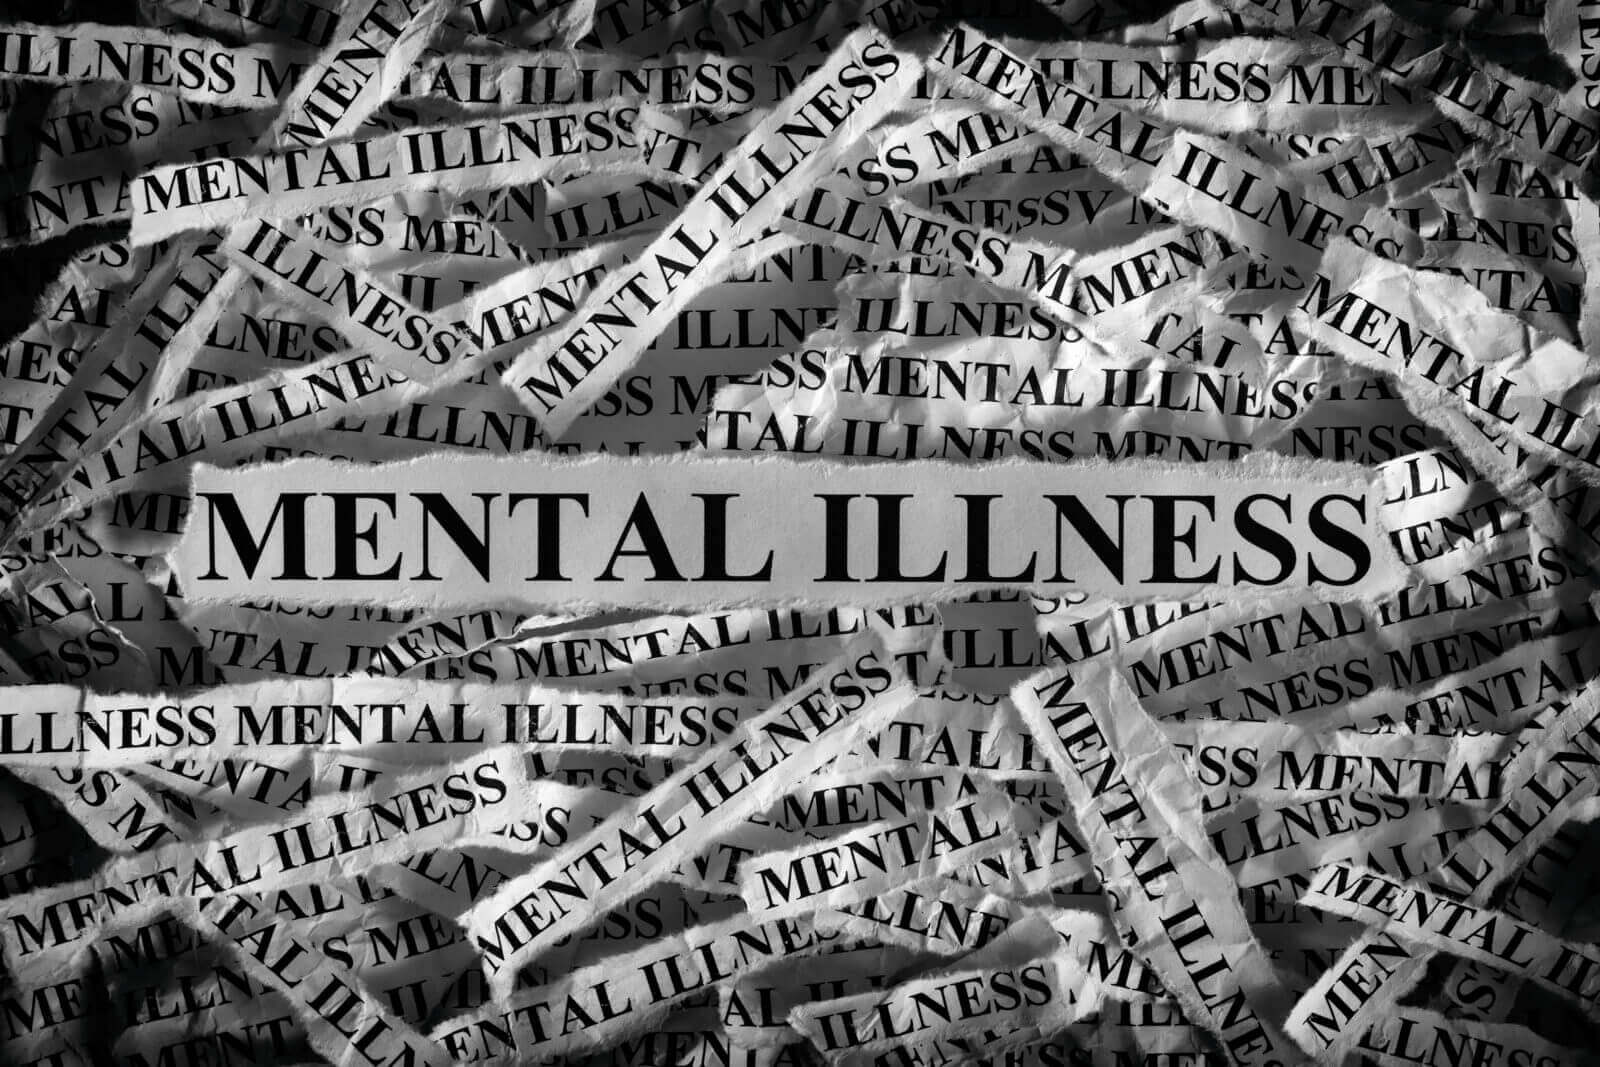 Thumbnail of Mental Illness and Addiction: Which Came First?